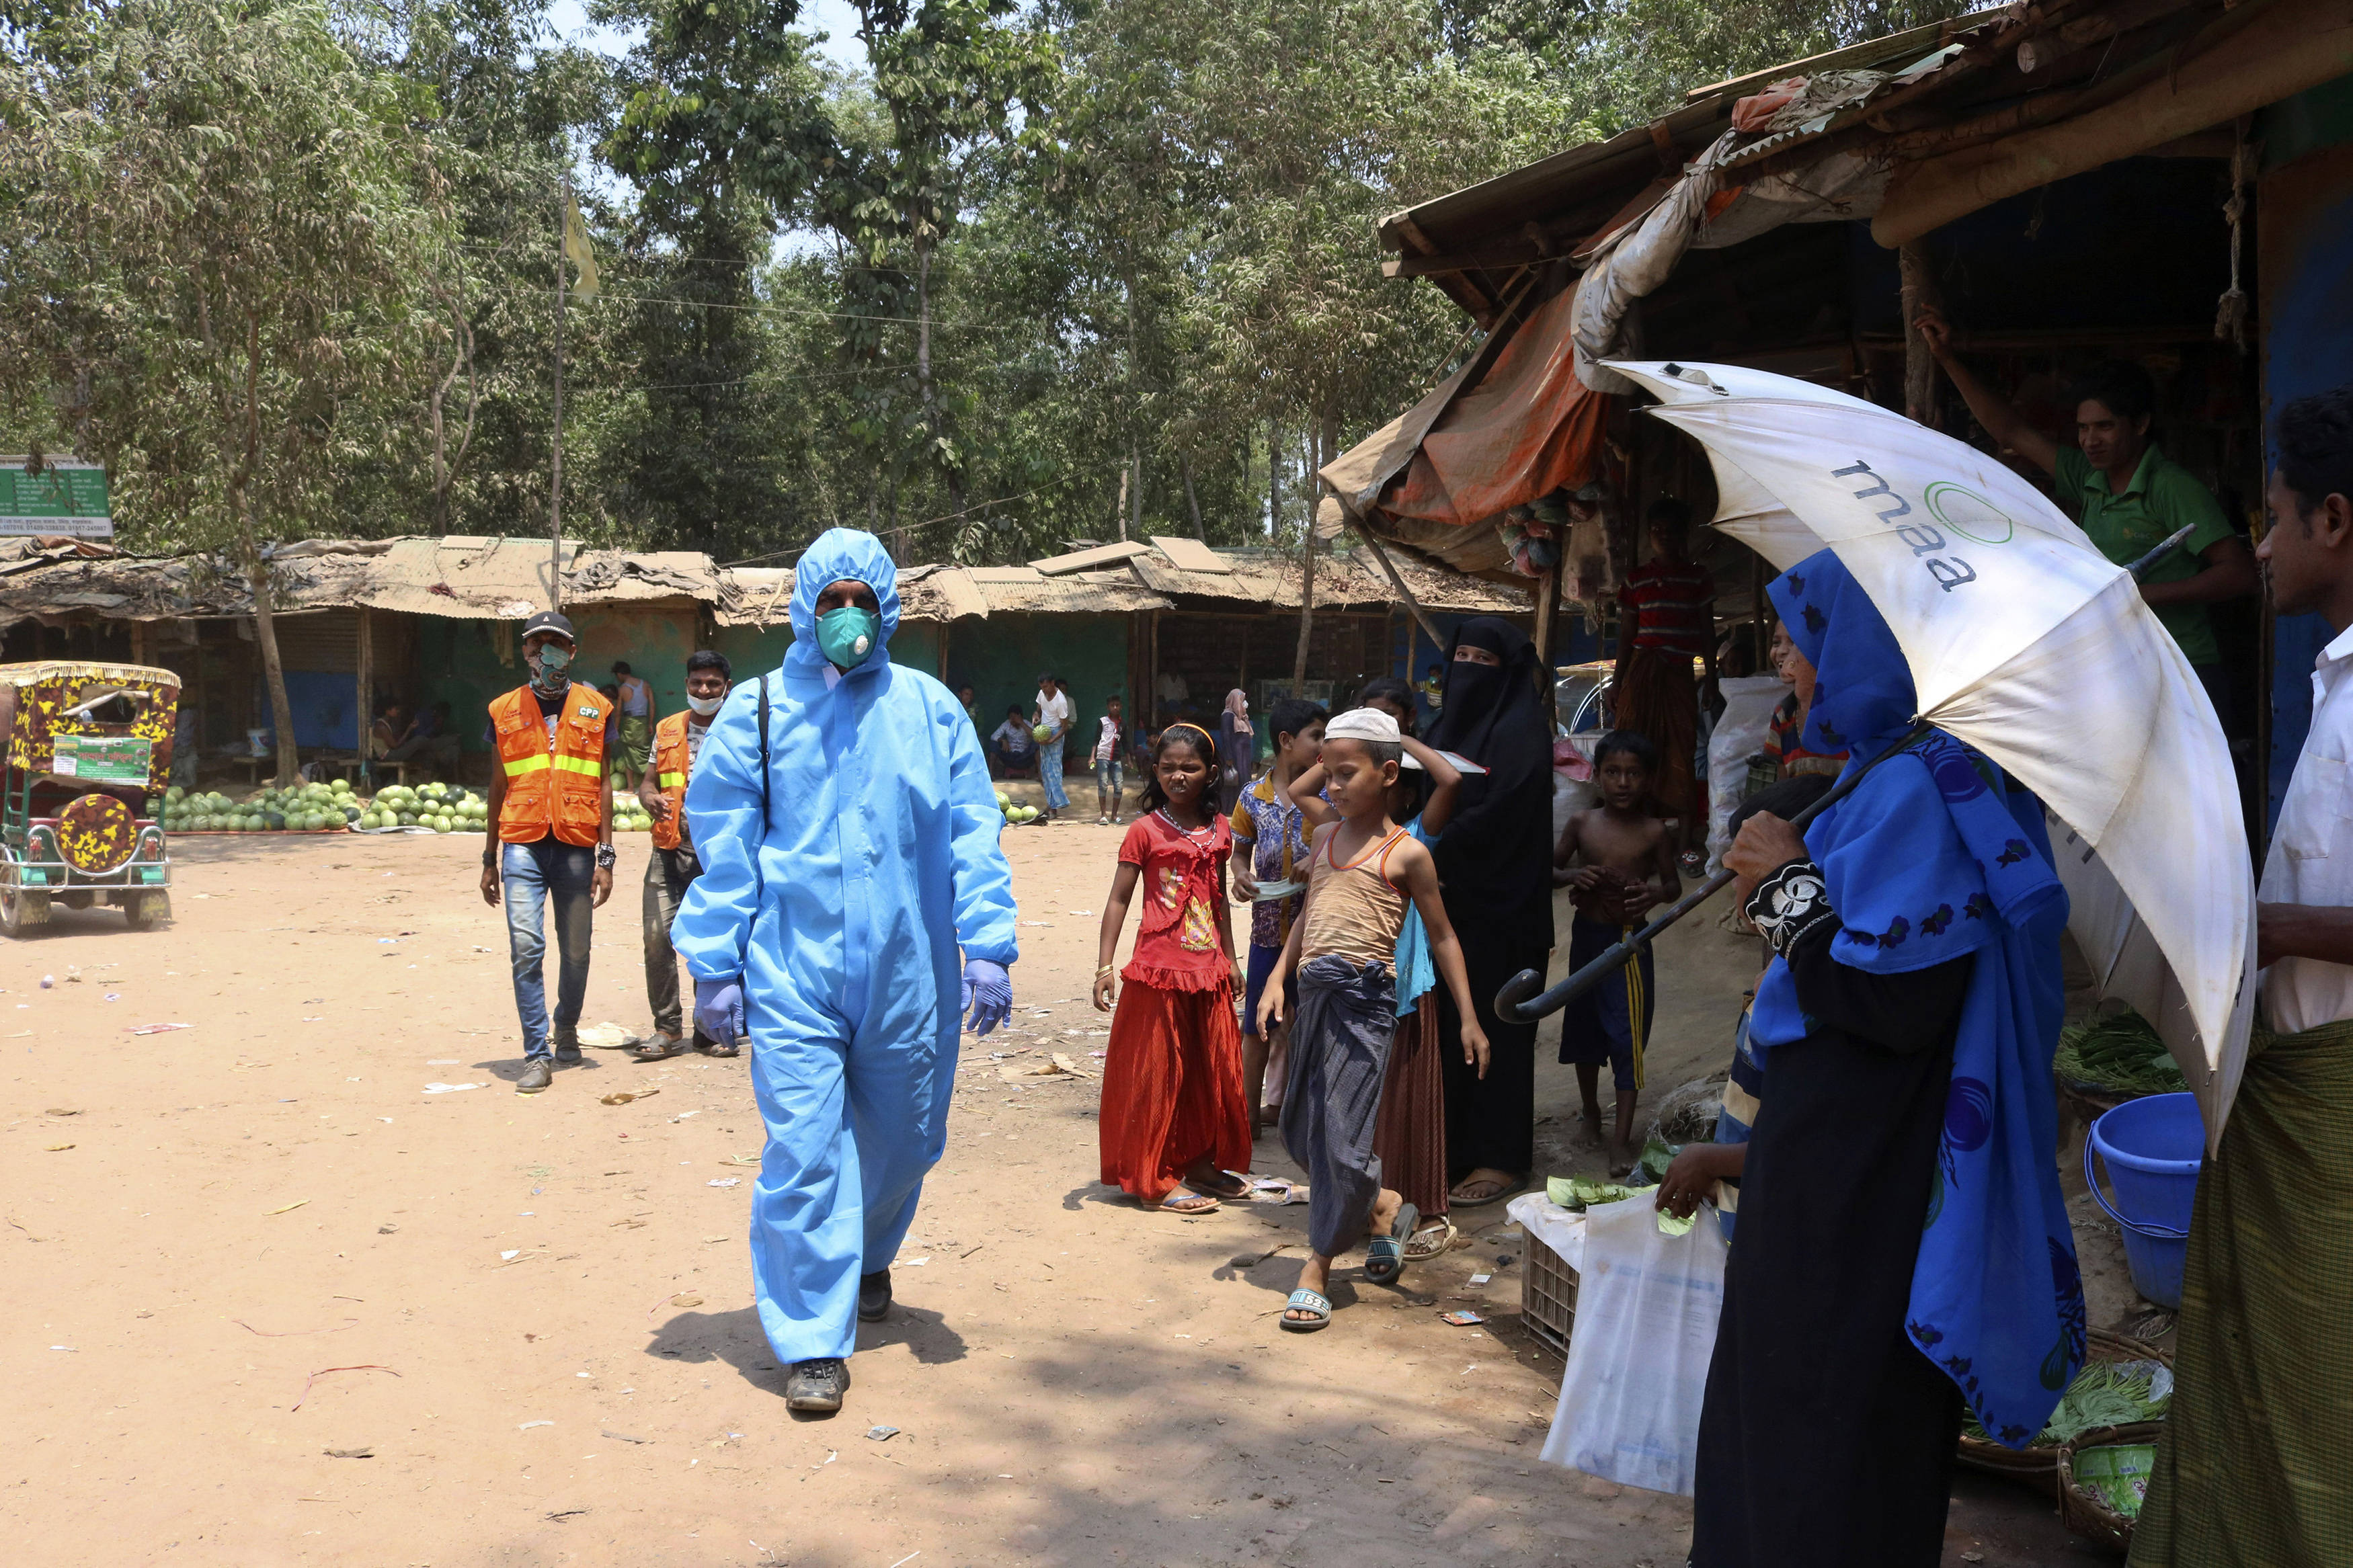 A health worker in a hazmat suit last month at the Kutupalong Rohingya refugee camp in Bangladesh. (Shafiqur Rahman/AP)